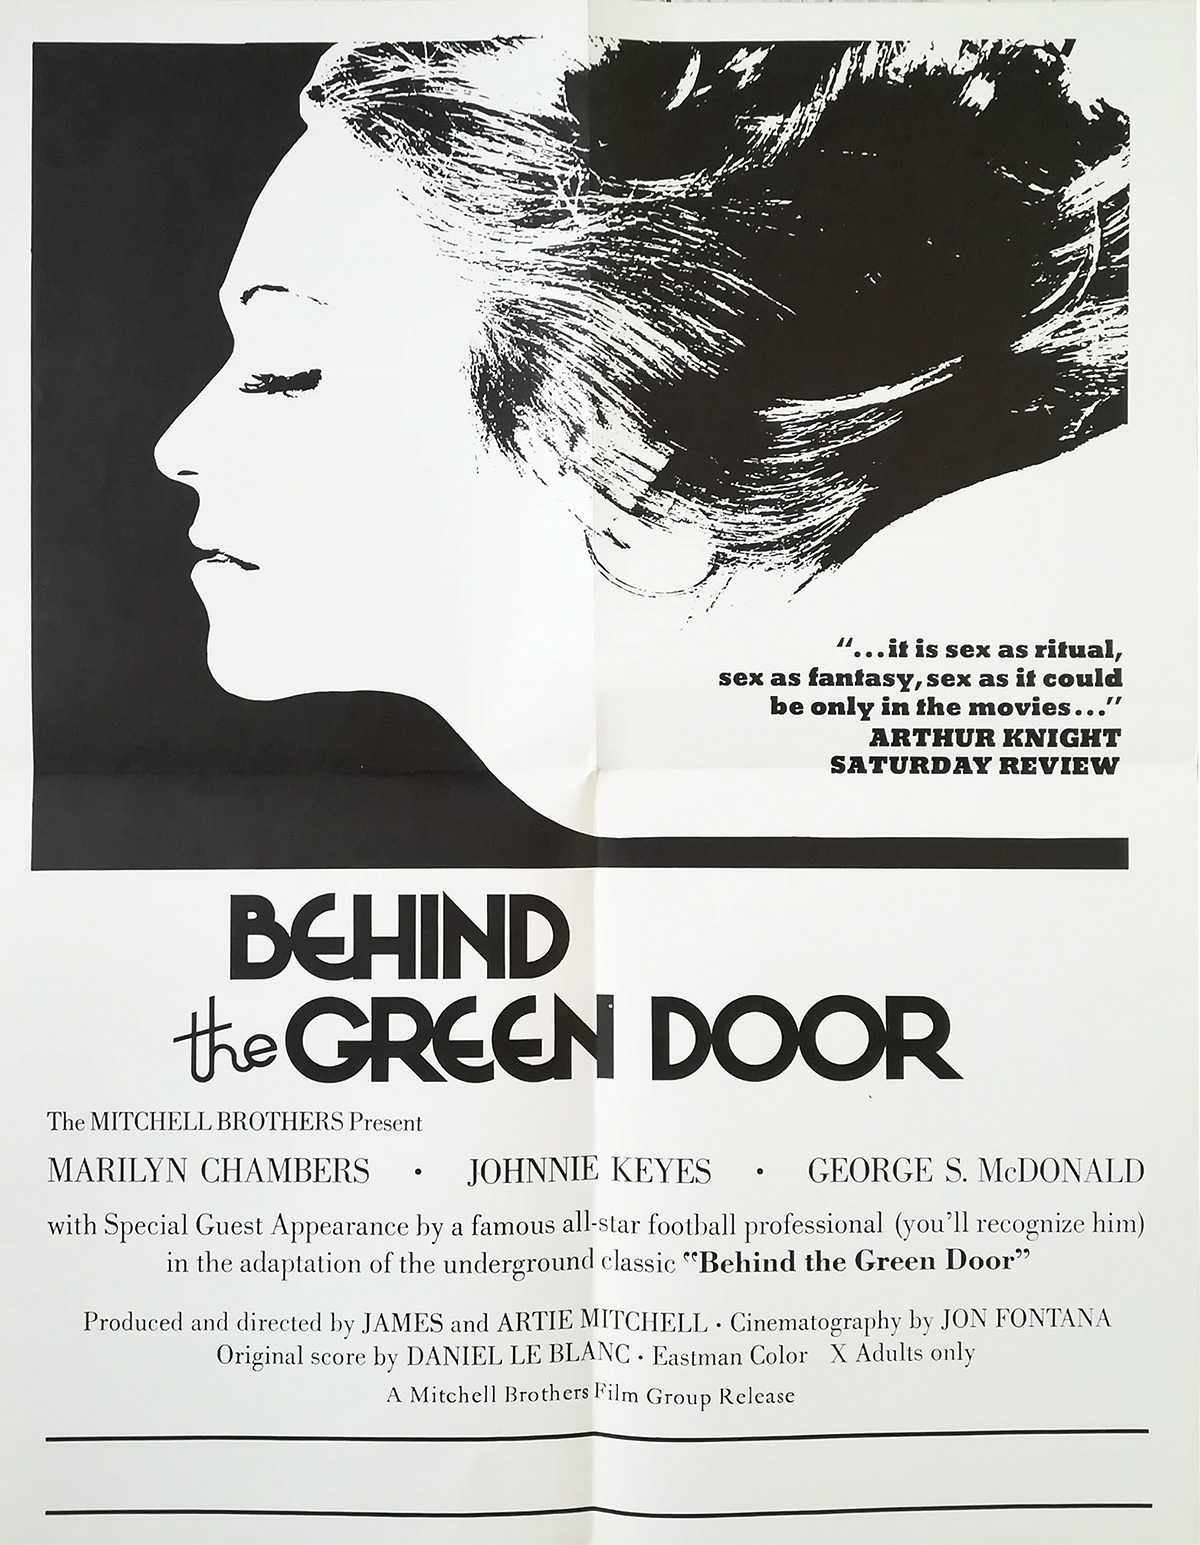 Behind The Green Door Pics behind the green door ultra-rare movie poster - 17x22 in. - 1972 - marilyn chambers